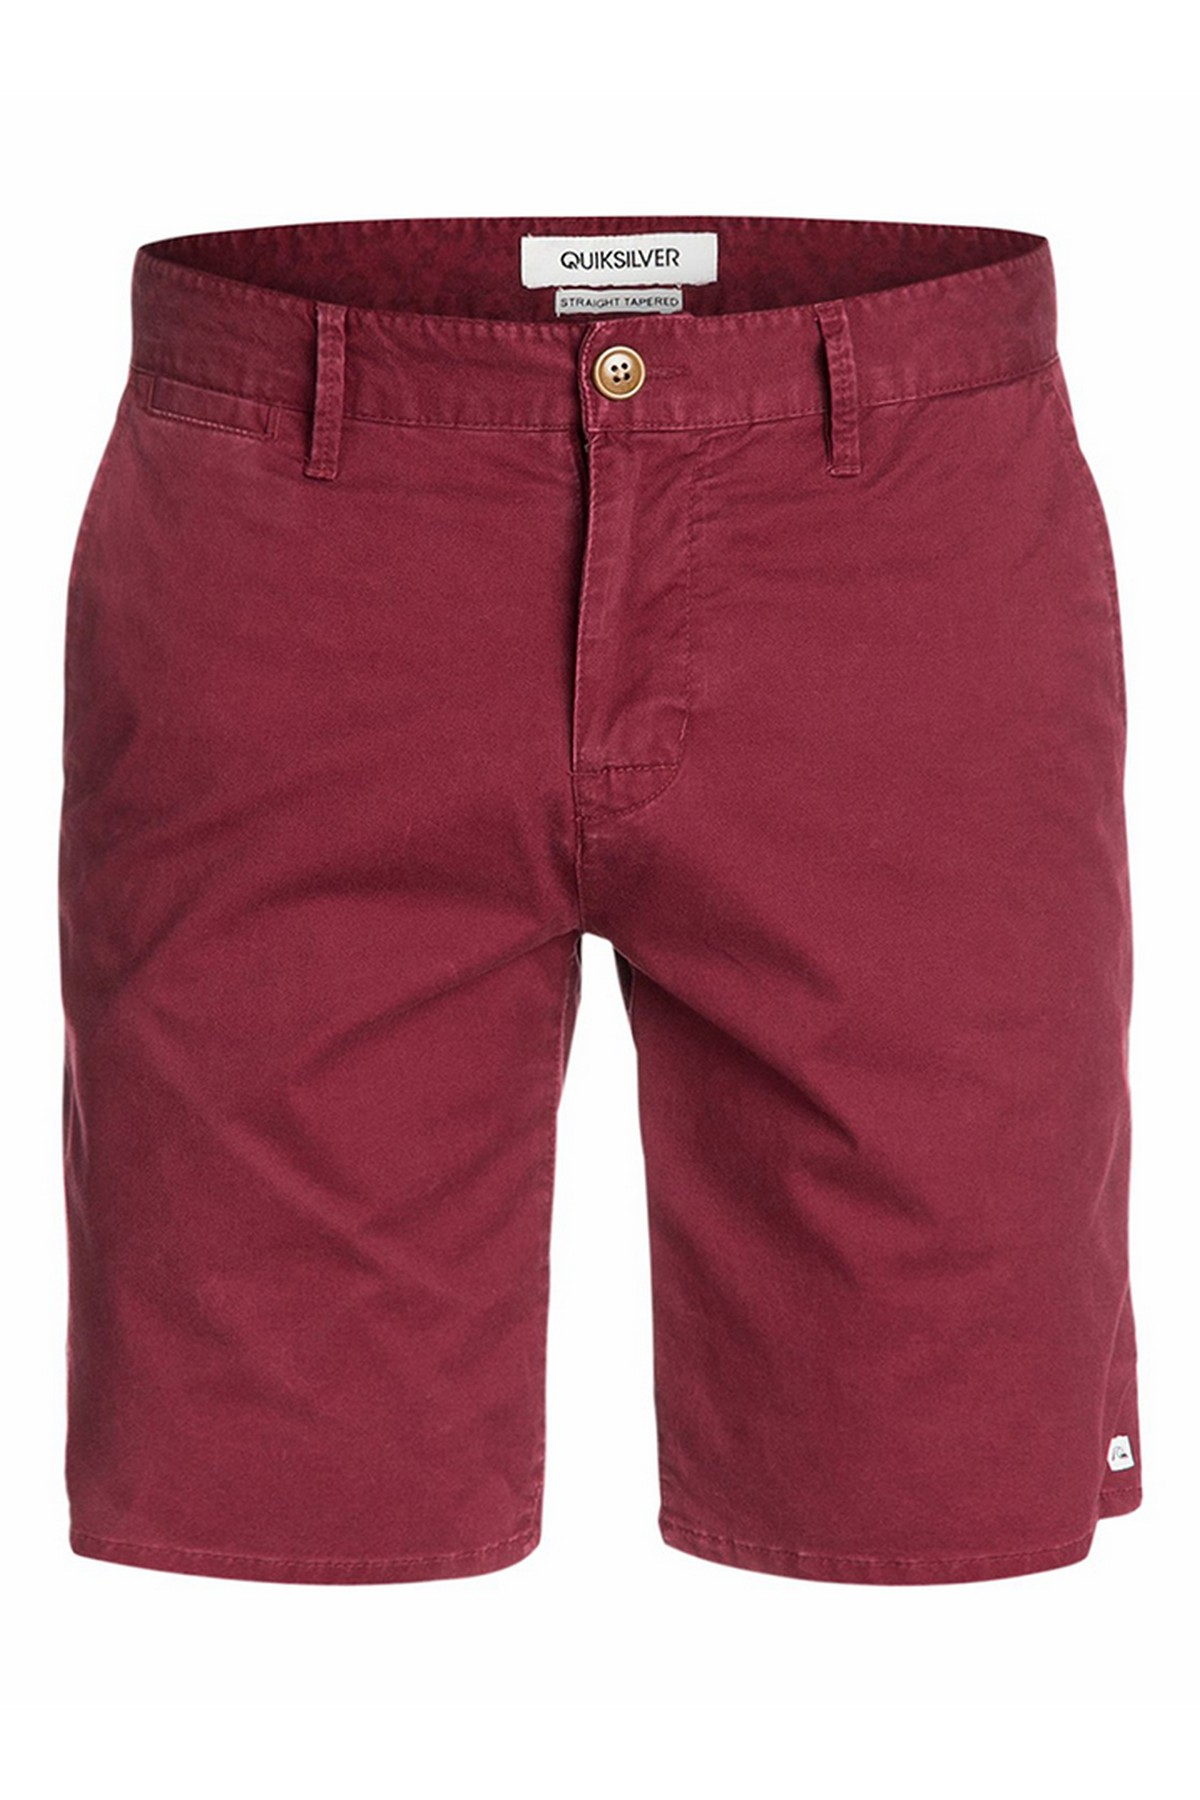 Quiksilver Everyday Chino Erkek Kapri Bordo (EQYWS03023-B)